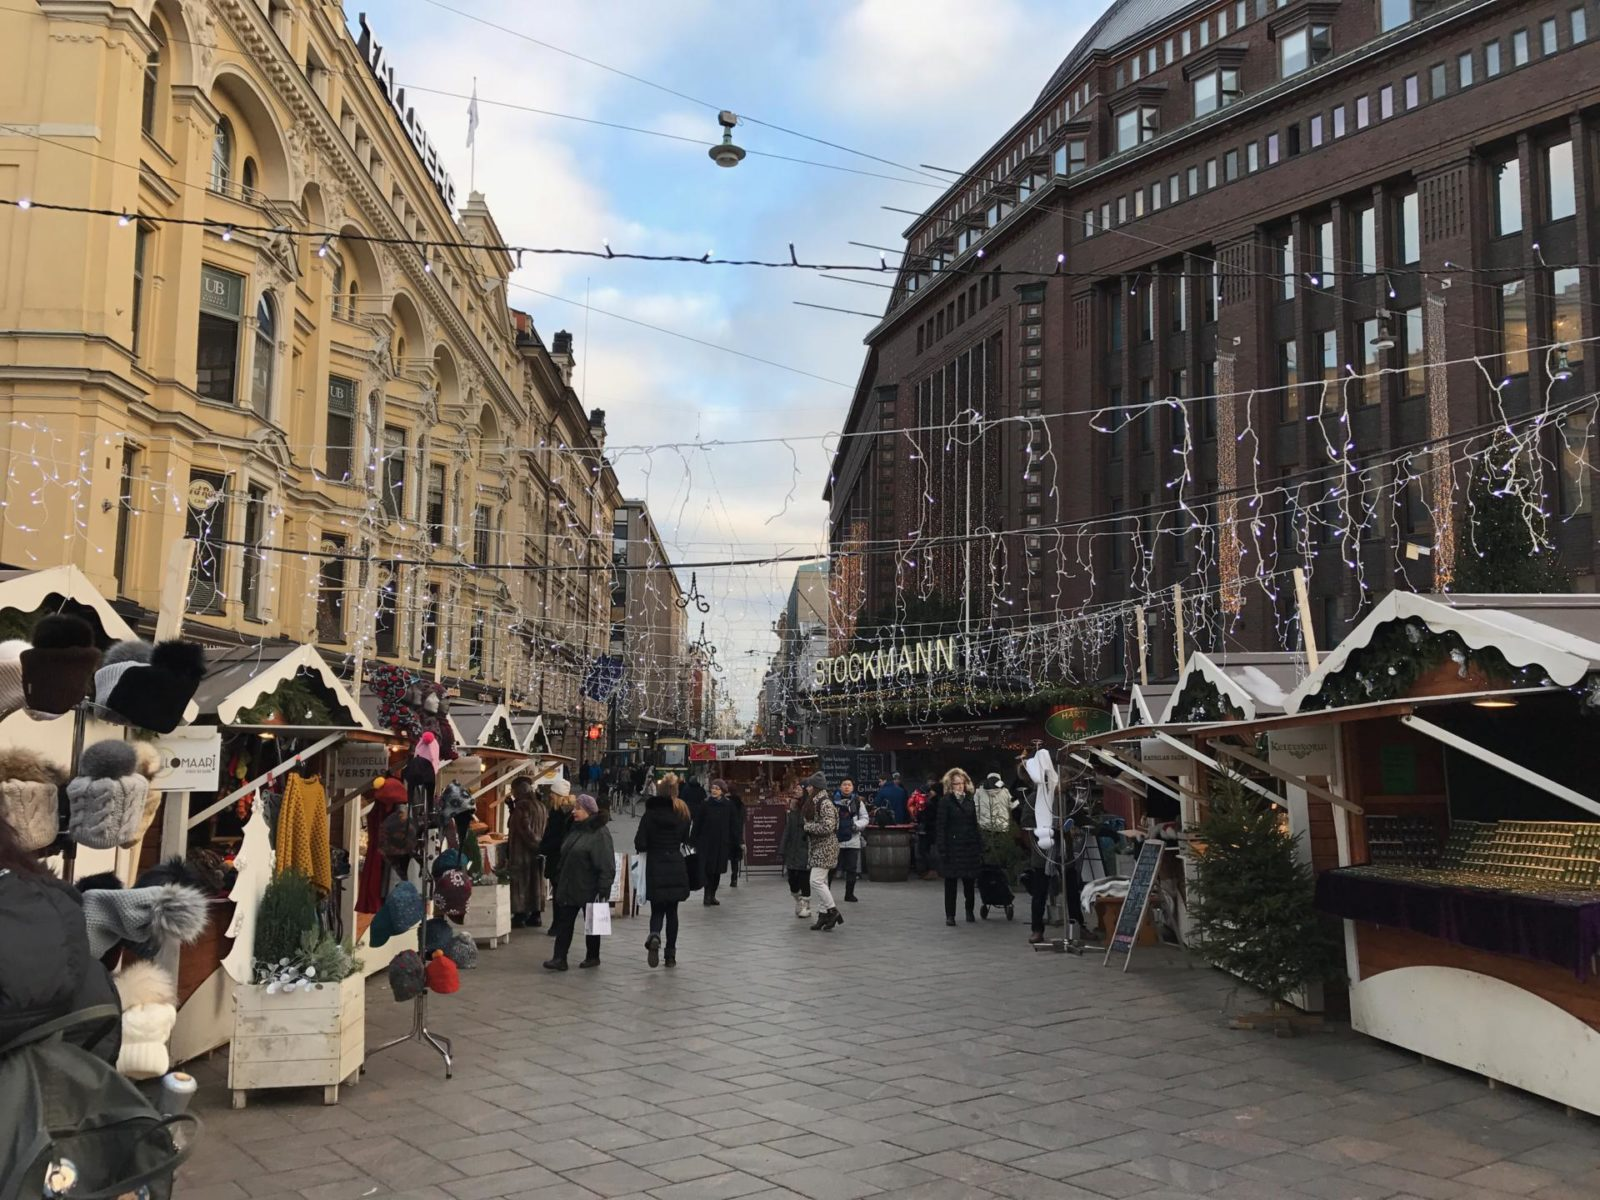 Wondering what it's like to wander the streets of Helsinki? Check out these pictures!